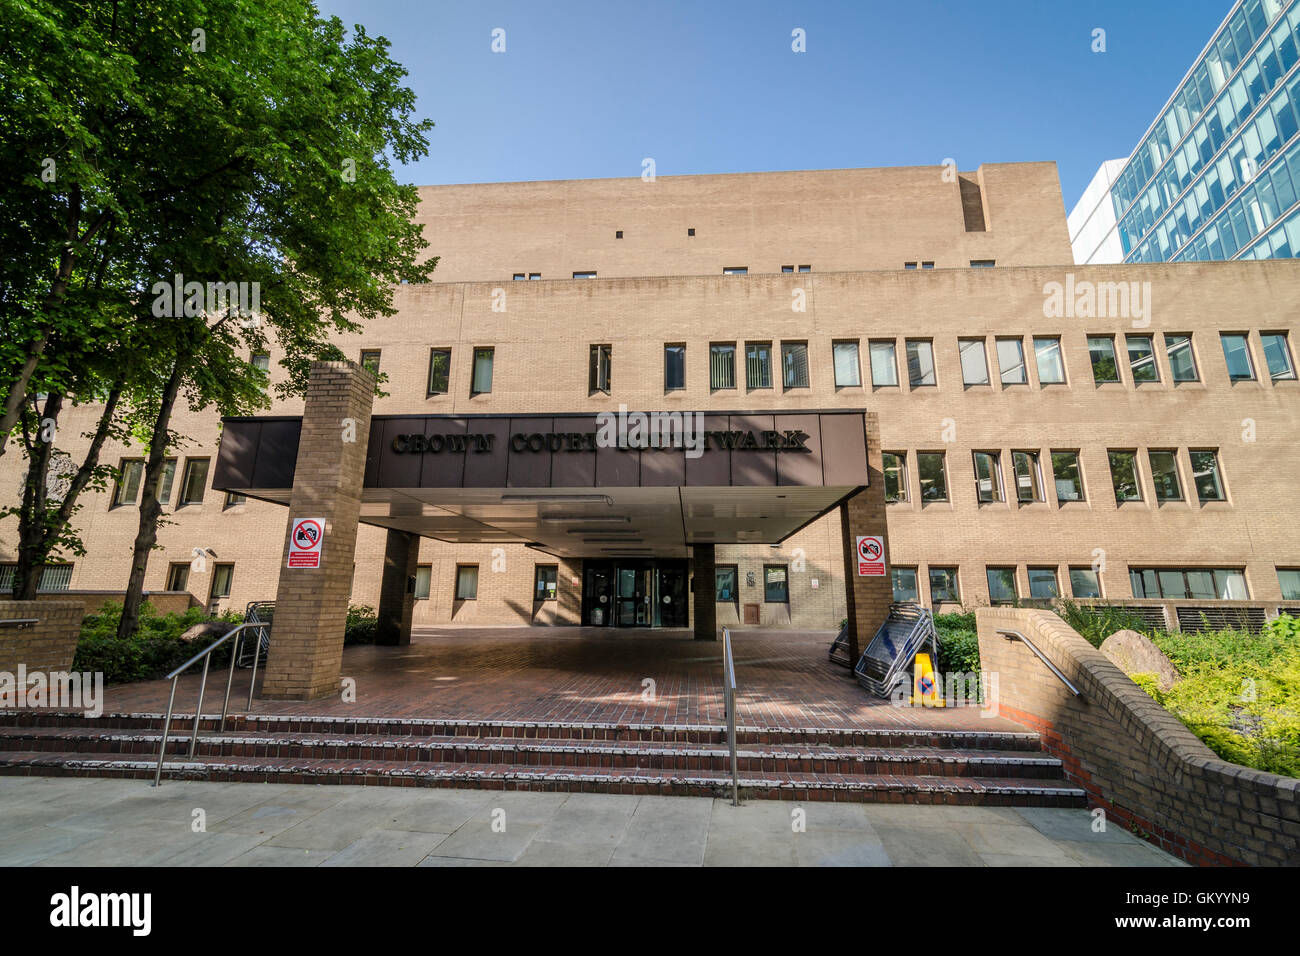 Southwark Crown Court, London, UK - Stock Image